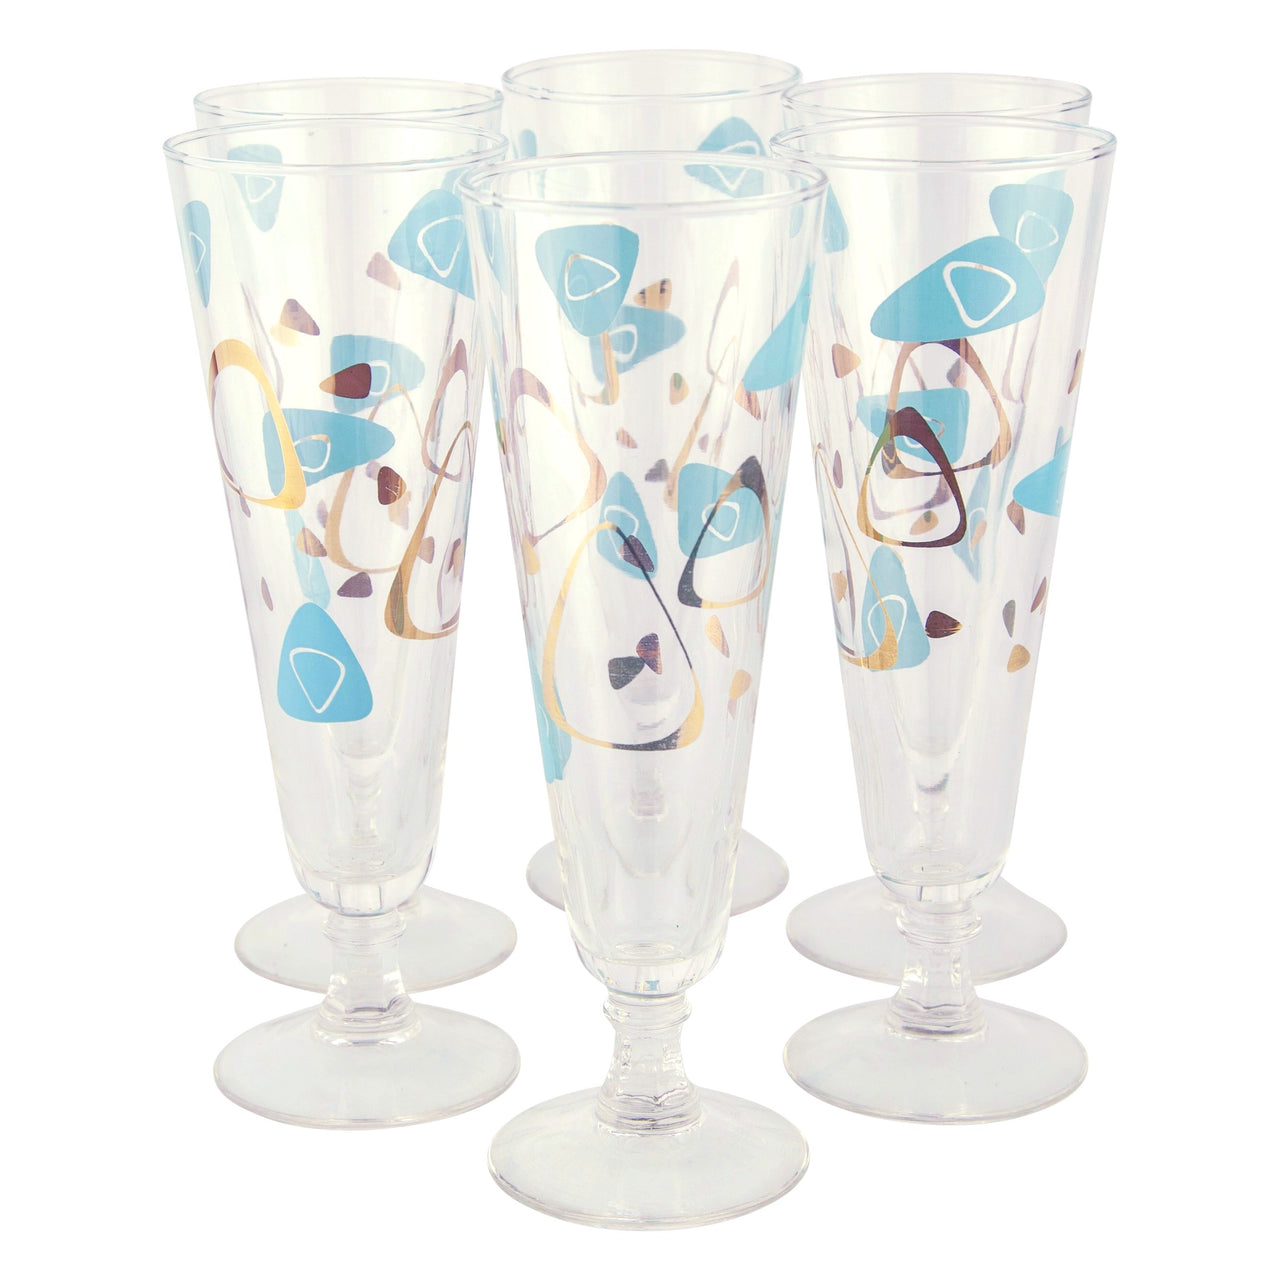 Aqua & Gold Atomic Pilsner Glasses | The Hour Shop Vintage